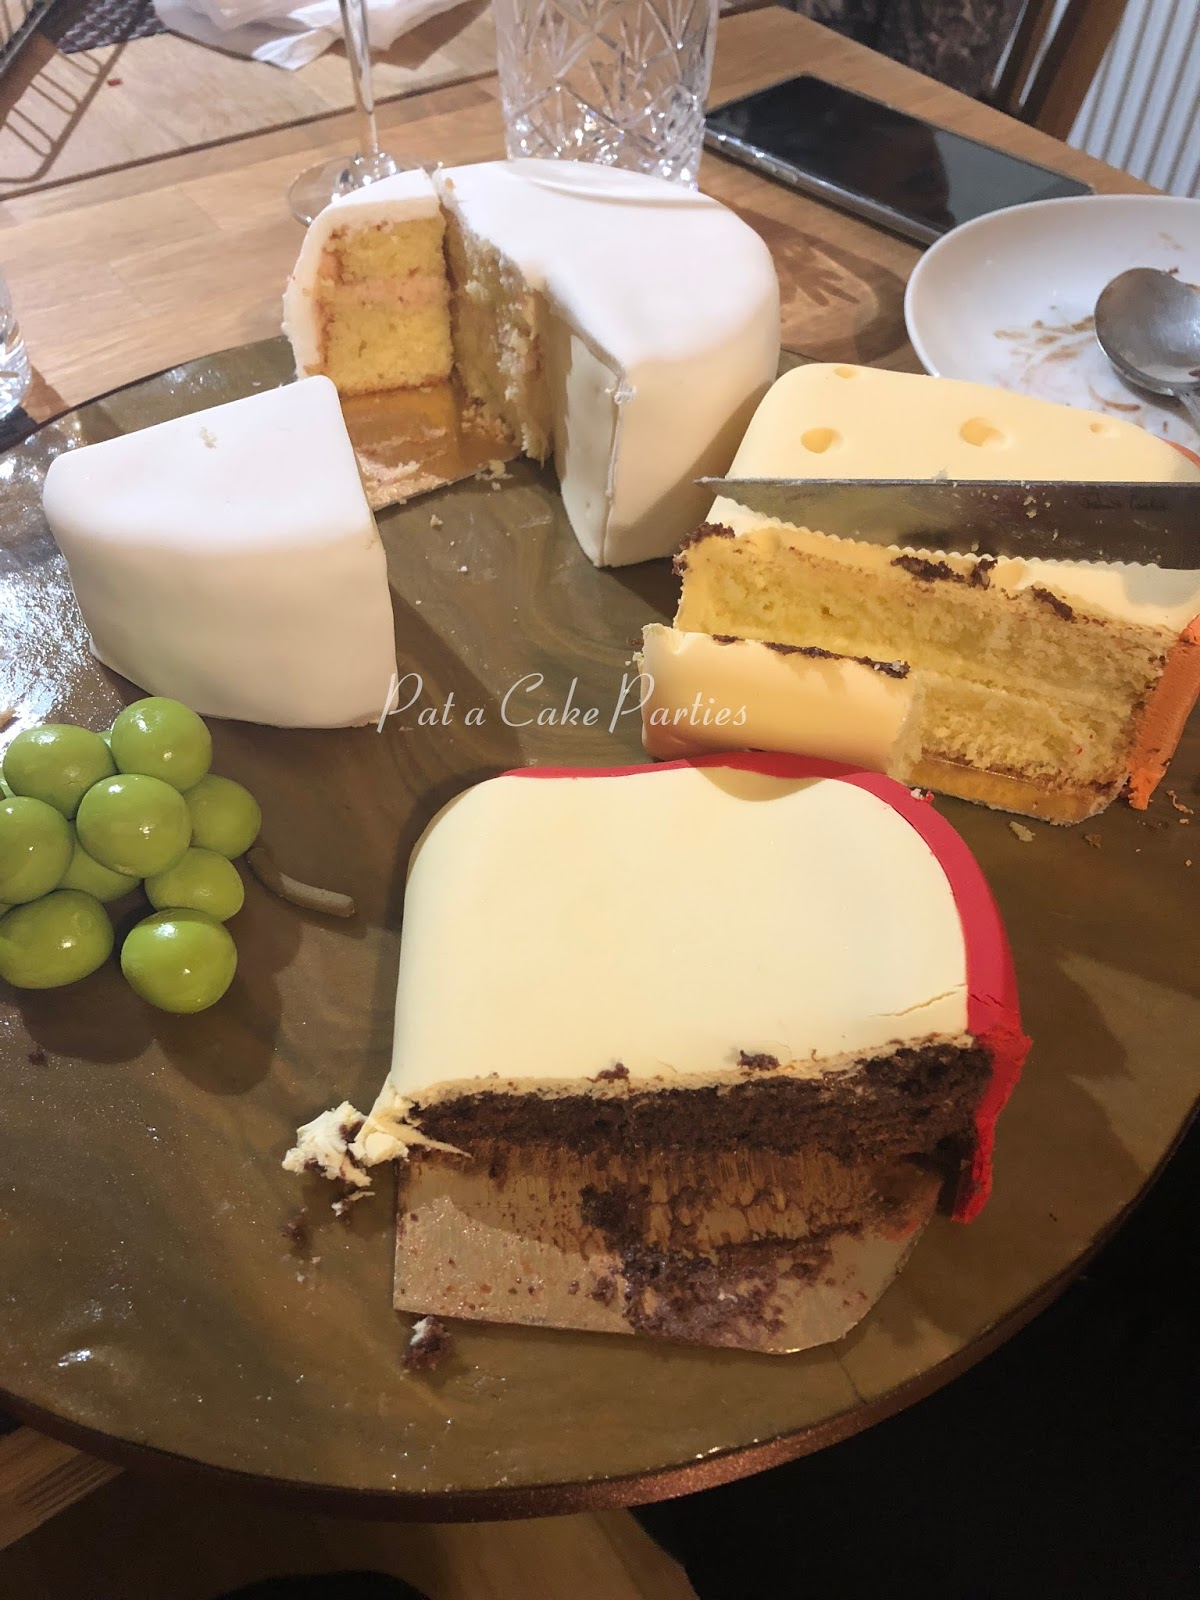 PataCake Parties Cheese Board Cake